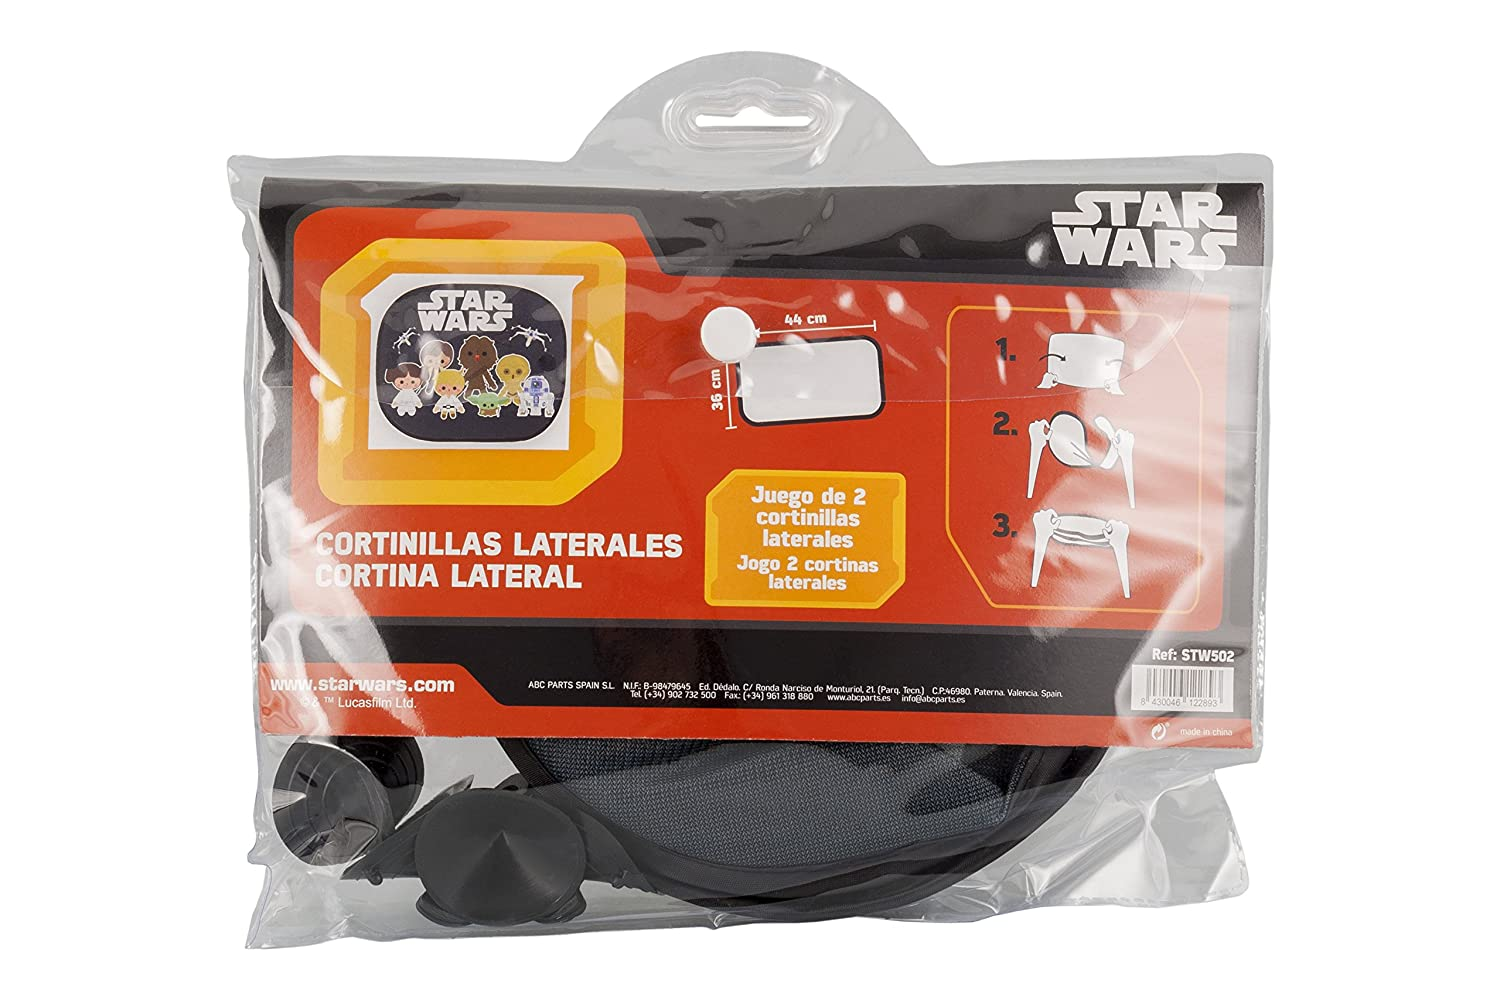 Star Wars STW502 Small Sun Shades for Cars